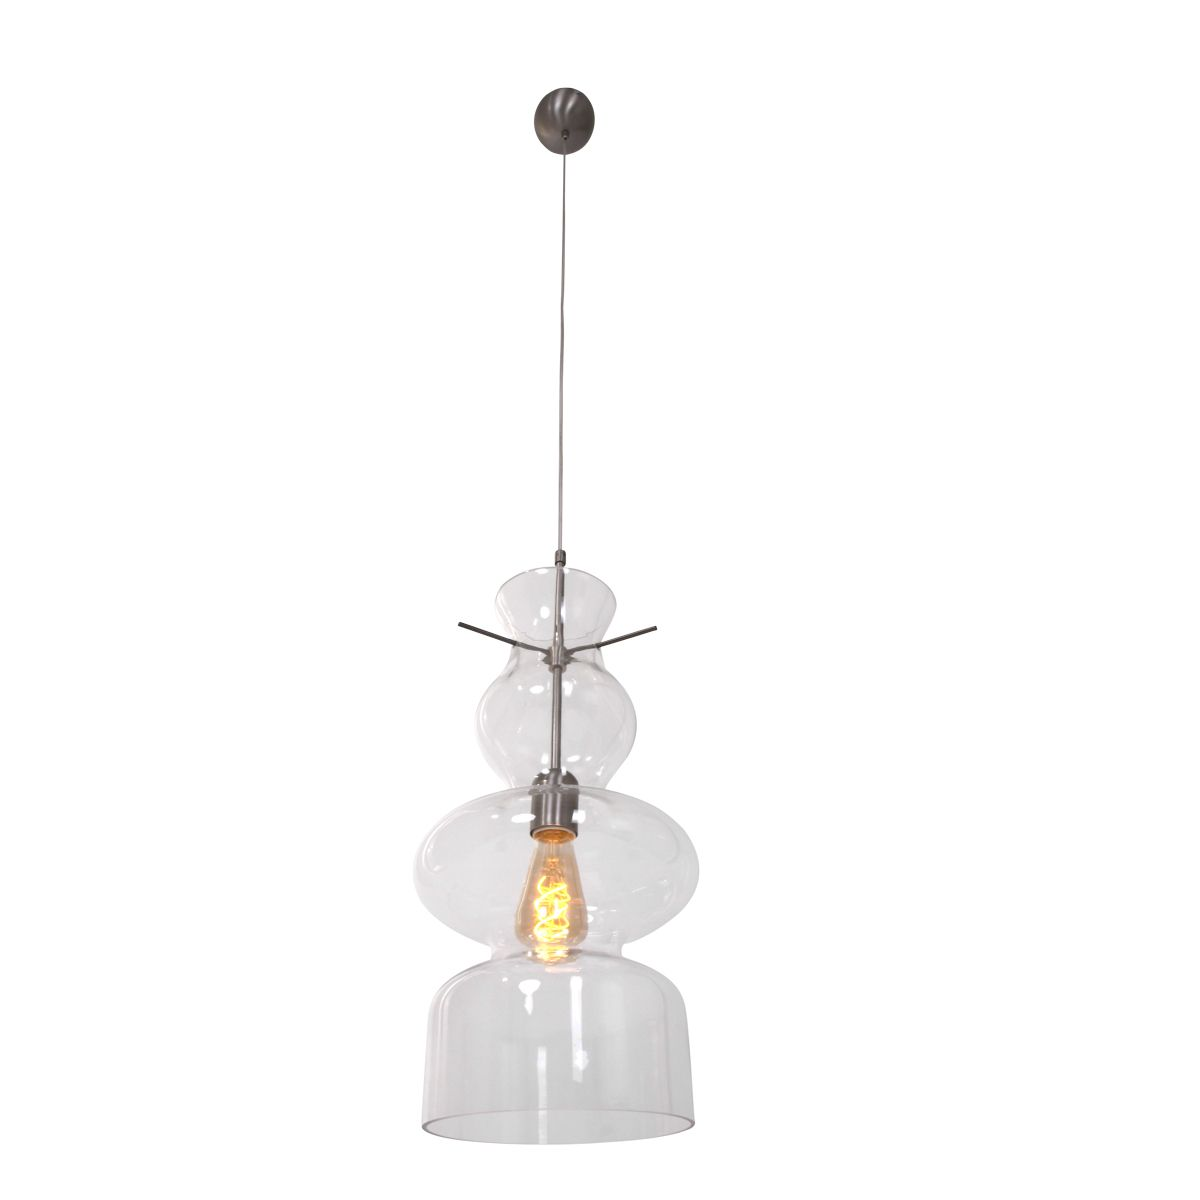 Steinhauer - Anne Day and Night - hanglamp - staal